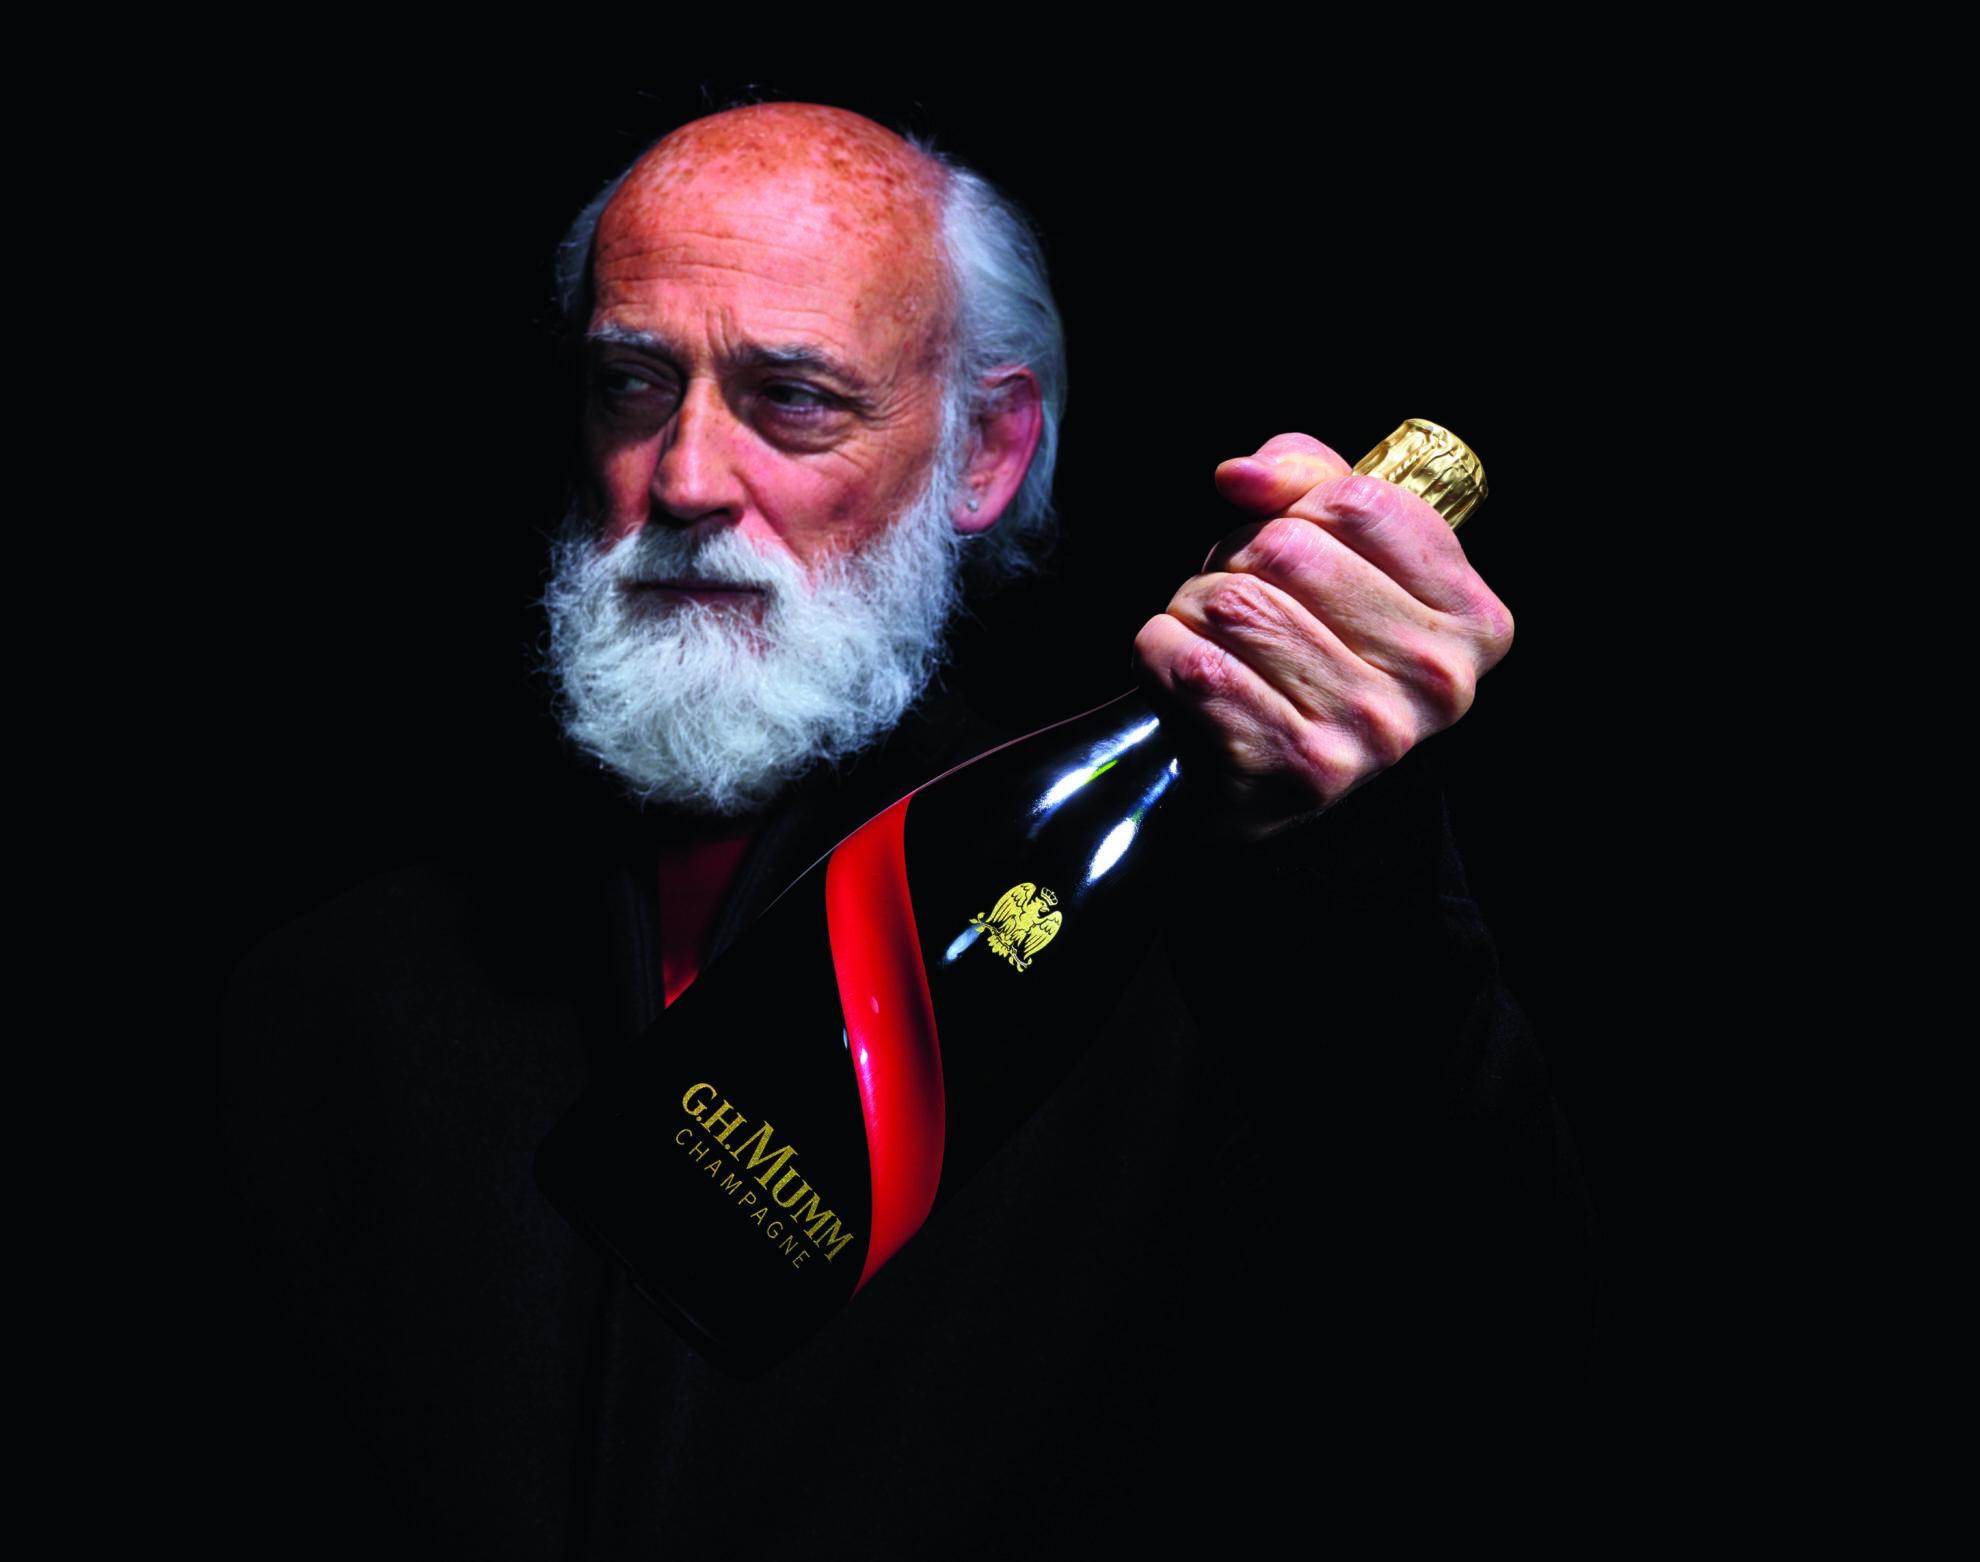 Chef in Town: MGC, the new lightest Mumm cuvée in the world